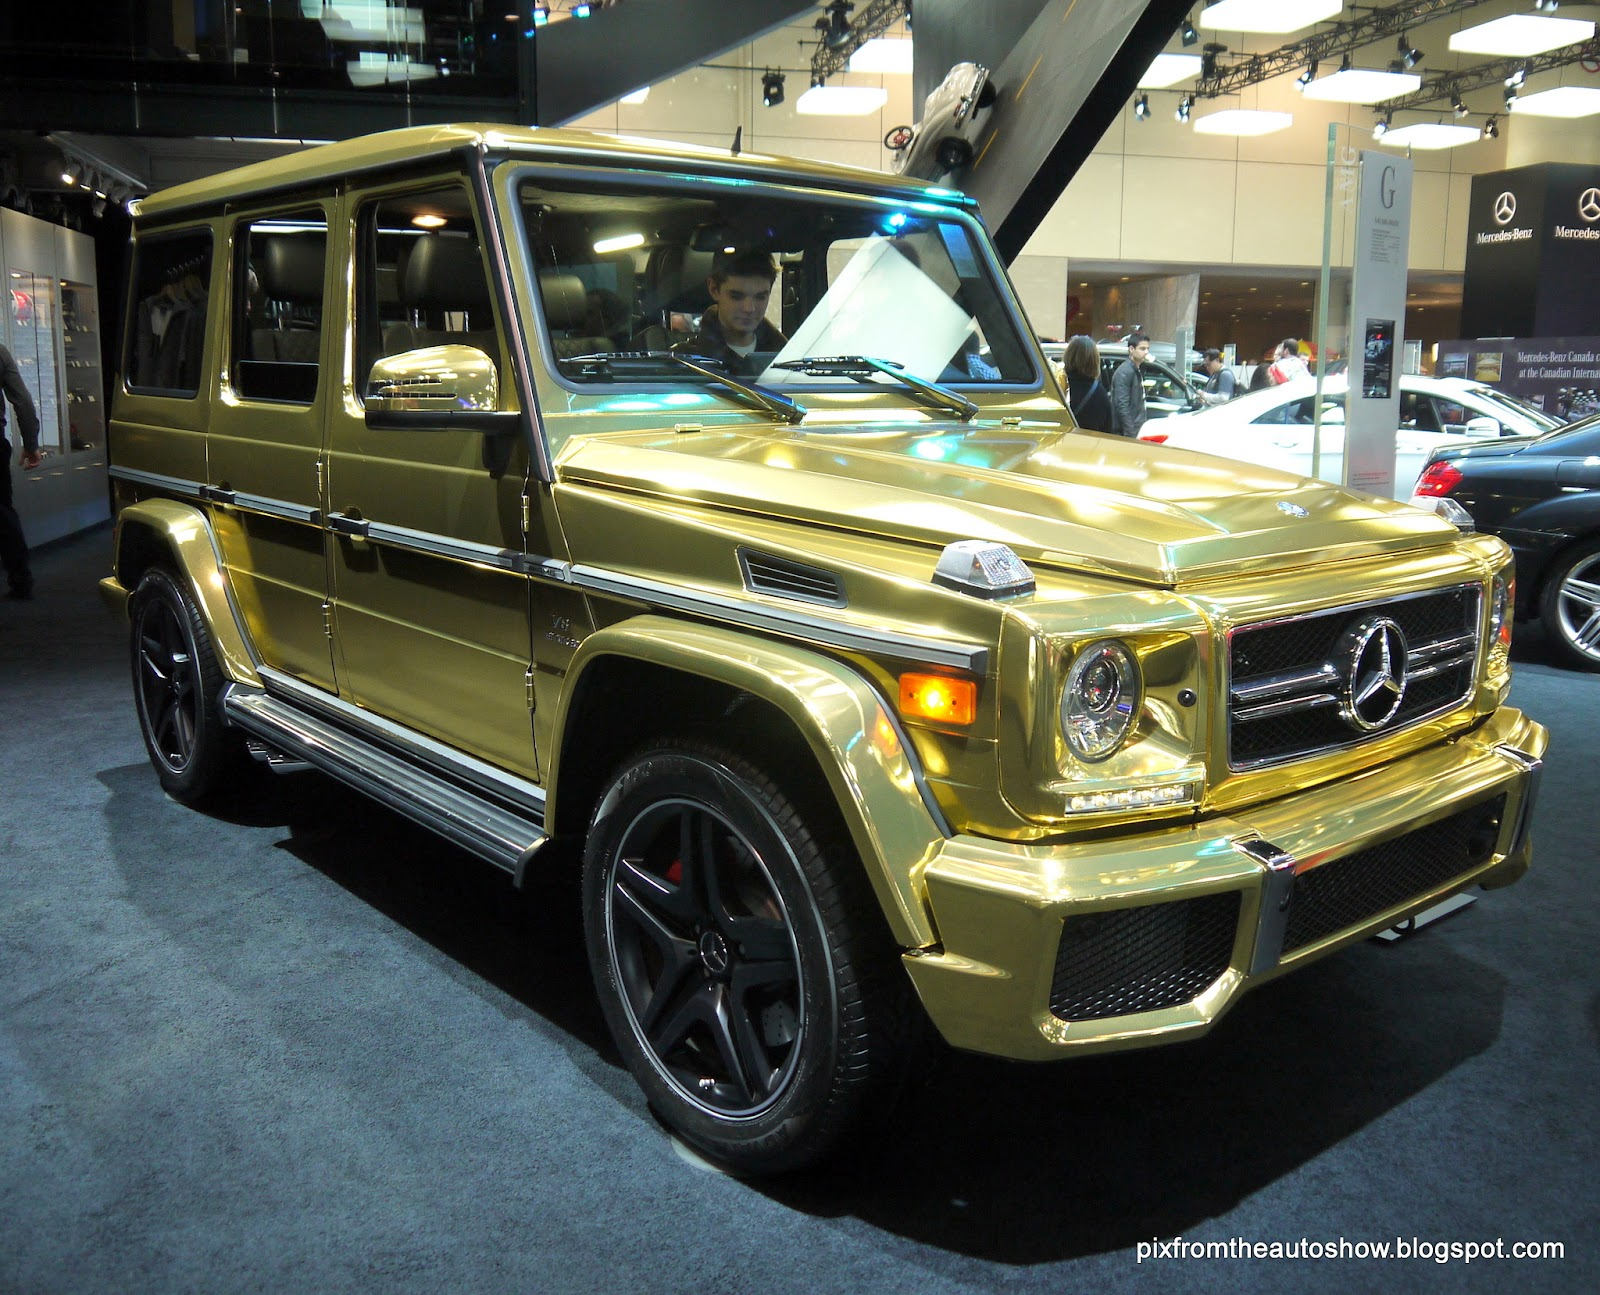 Latest cars from around the world Mercedes Benz G Class SUV